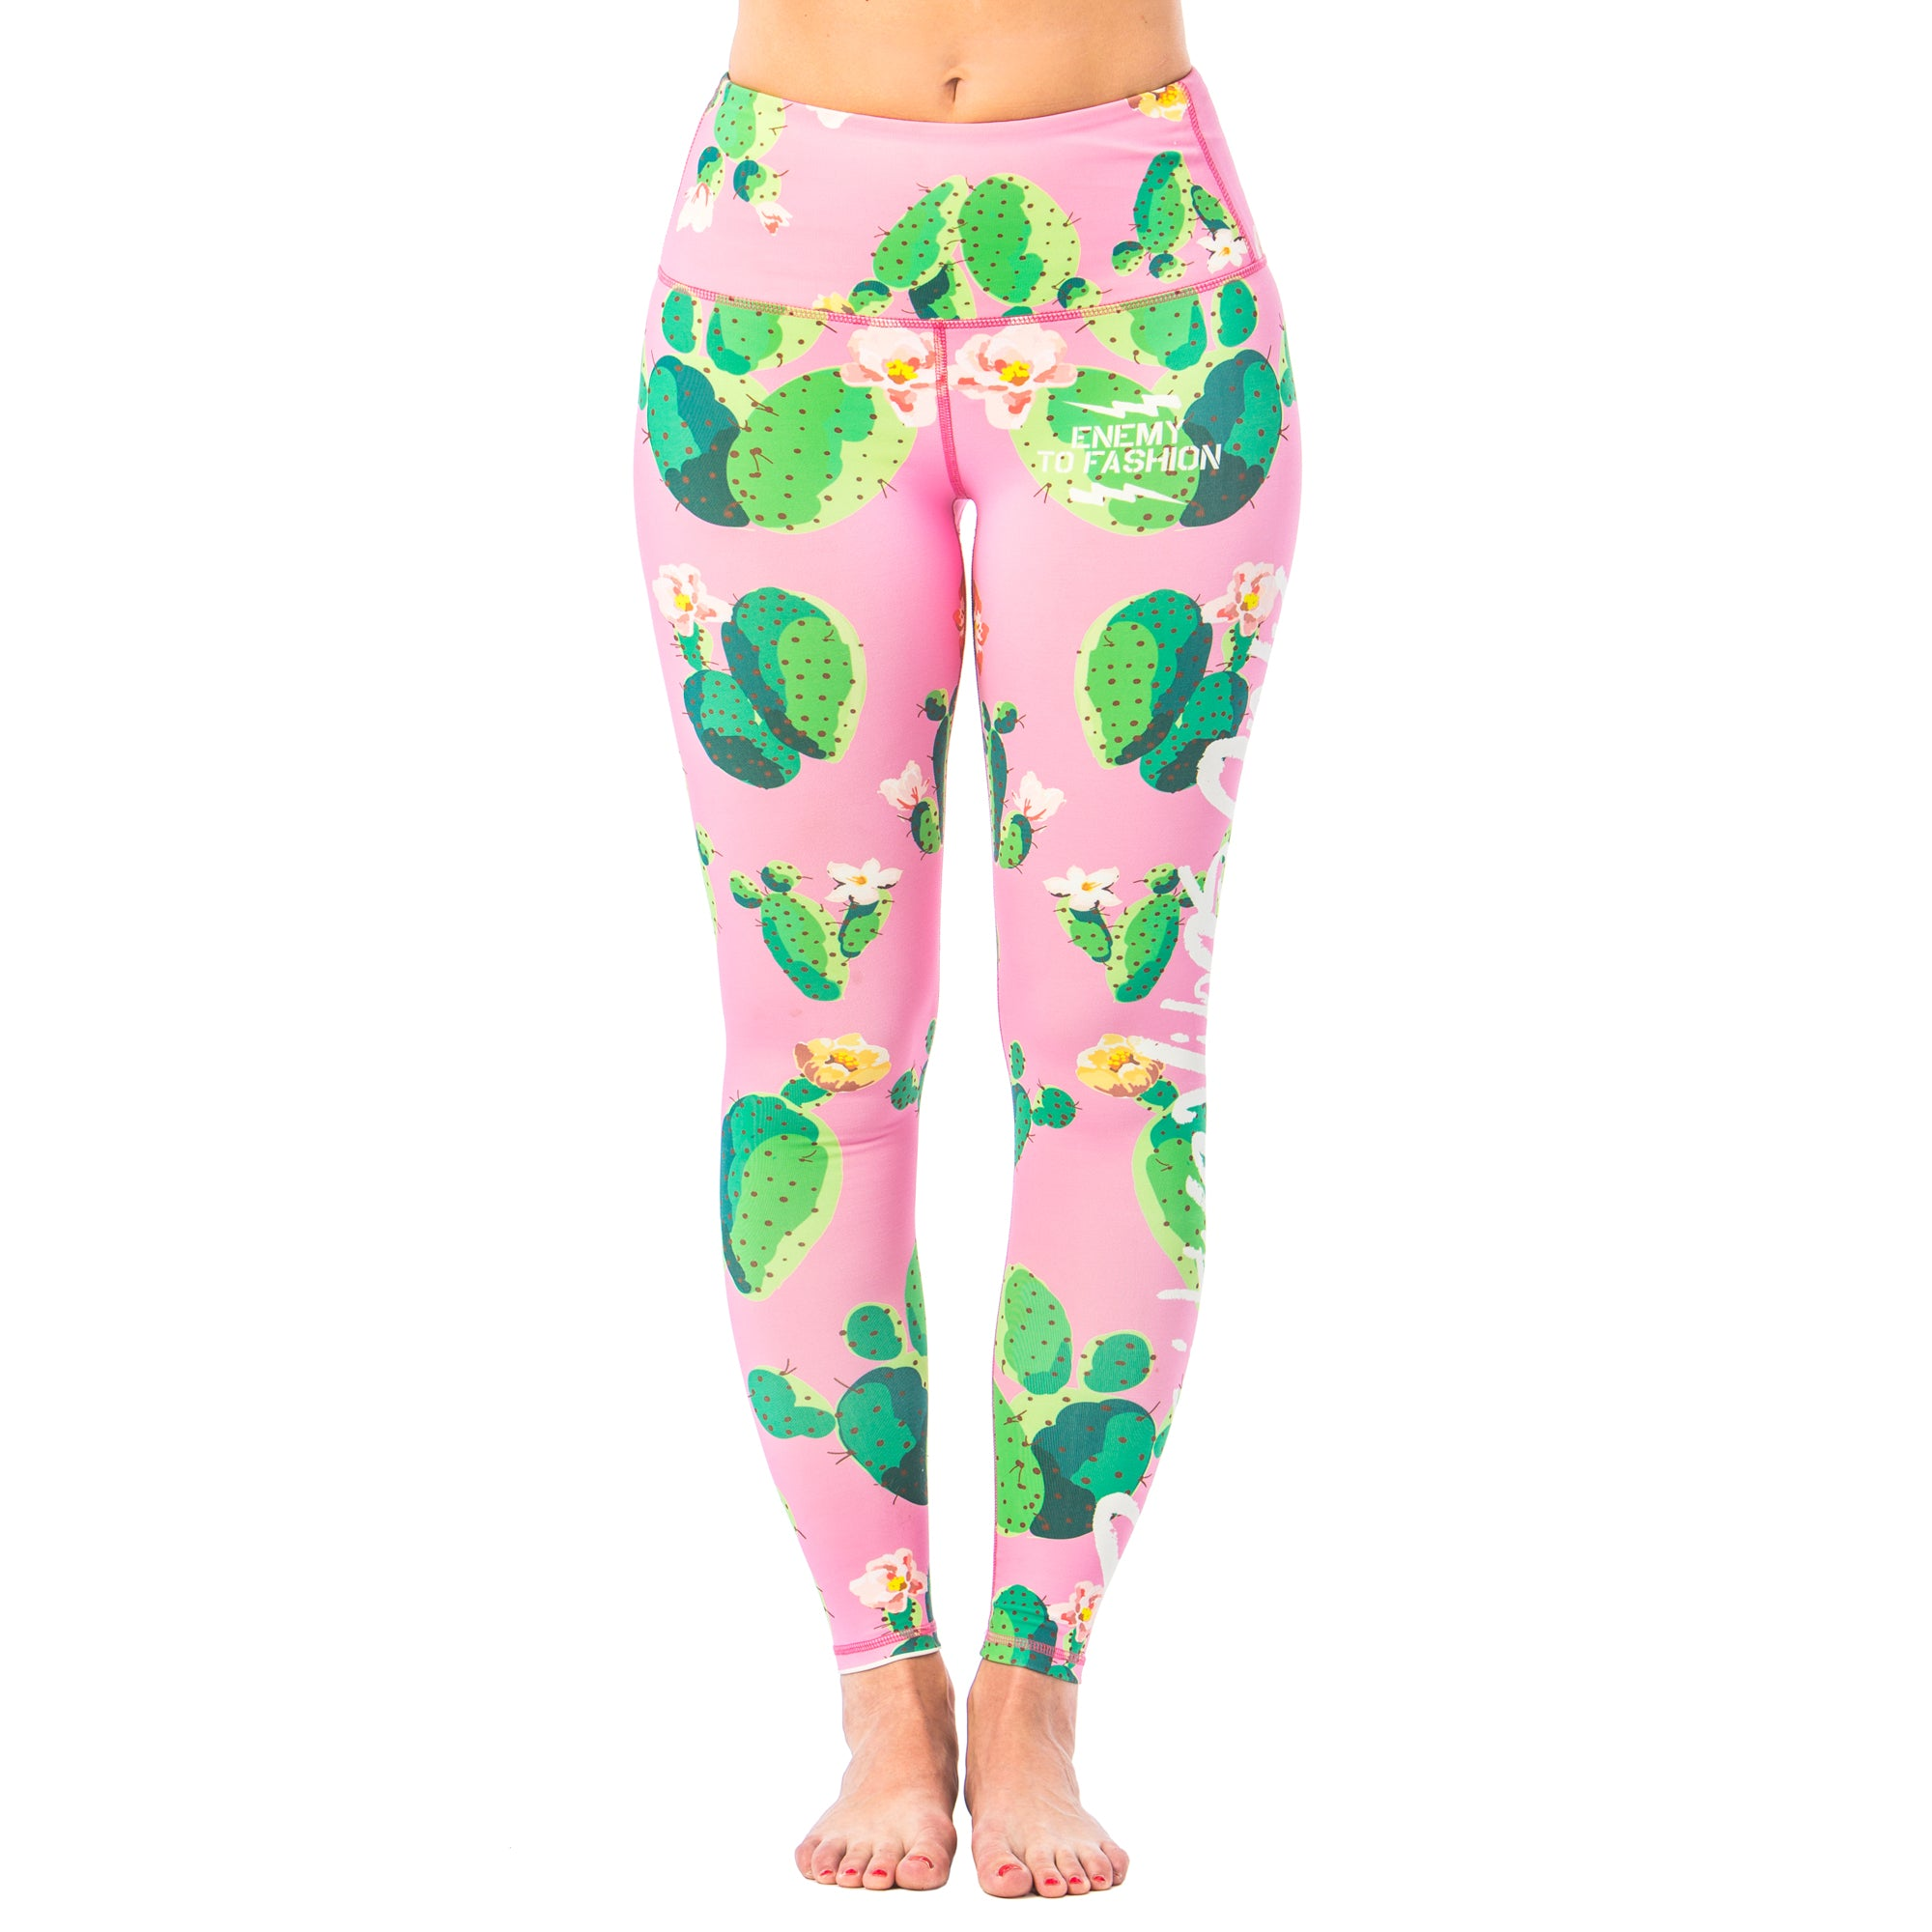 Prickled Pink Yoga Pants - PRE ORDER